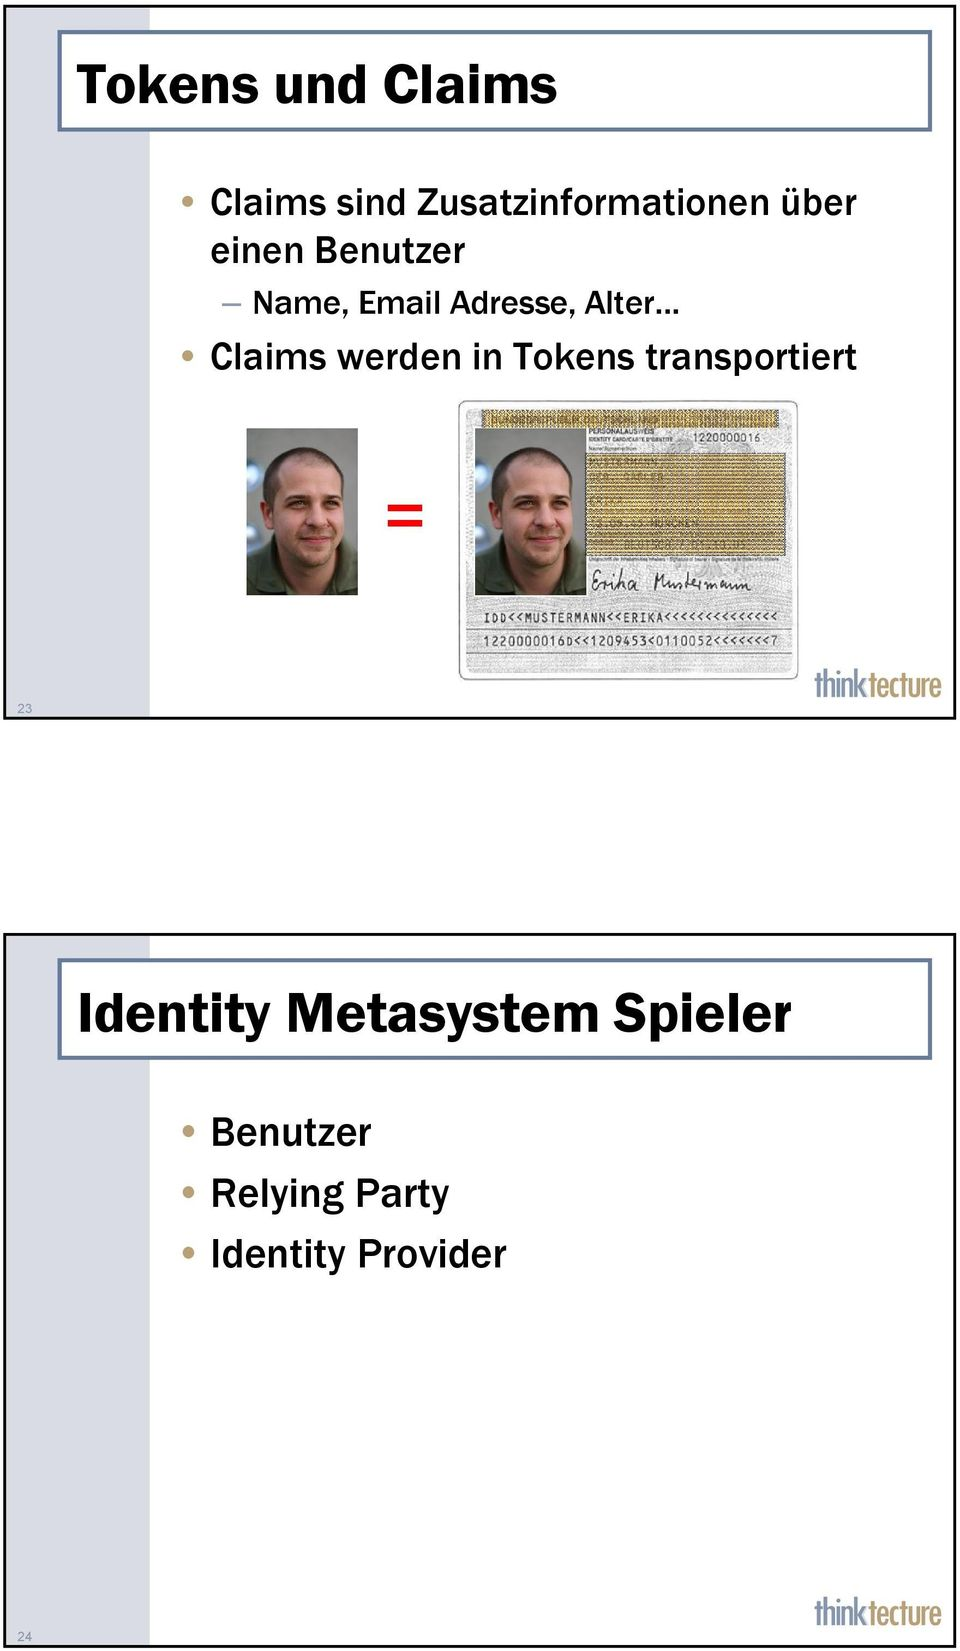 Claims werden in Tokens transportiert = 23 Identity